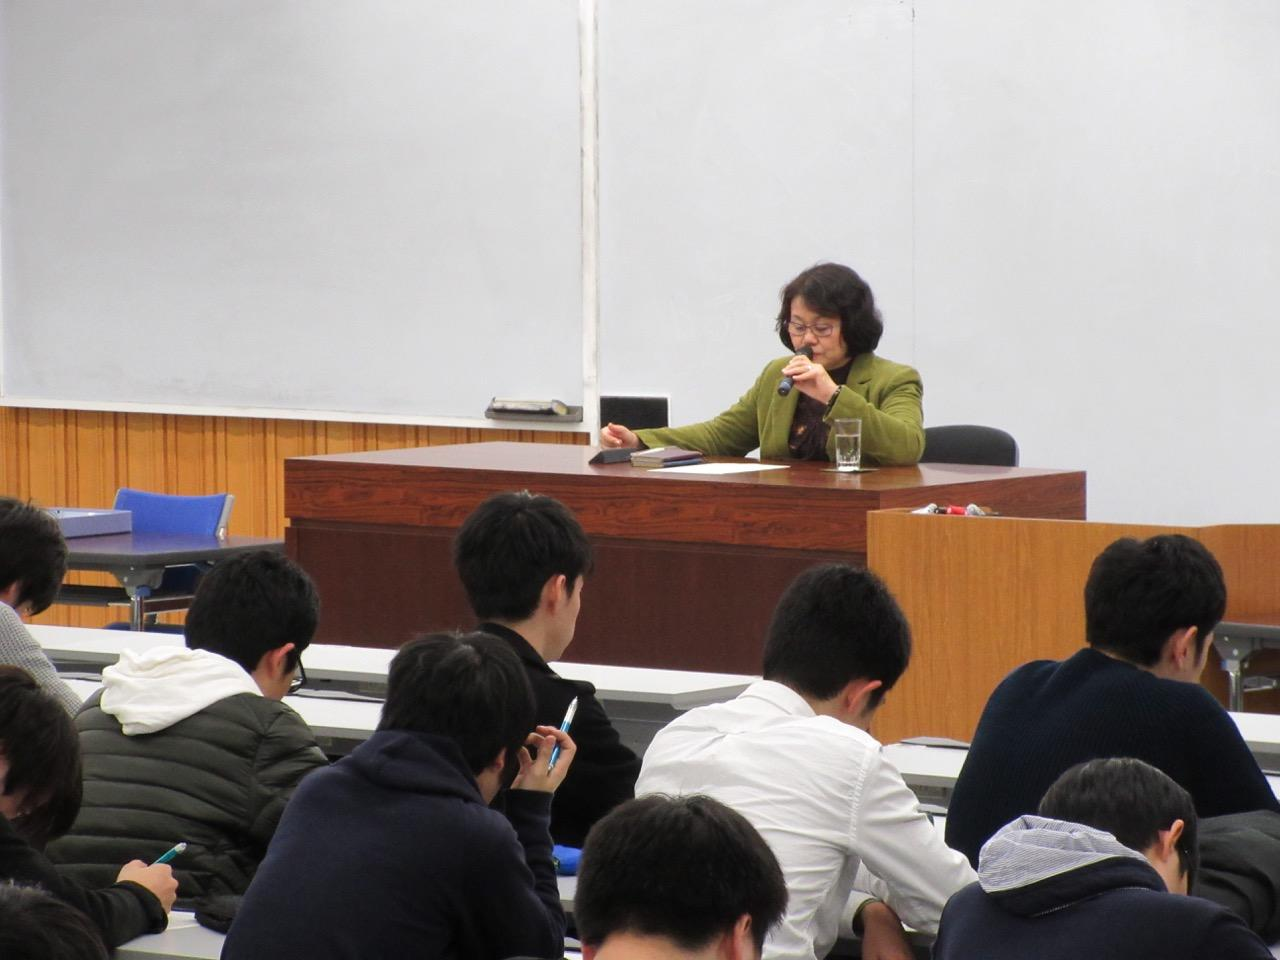 http://www.shinshu-u.ac.jp/faculty/econlaw/topics/s_IMG_1581.jpg